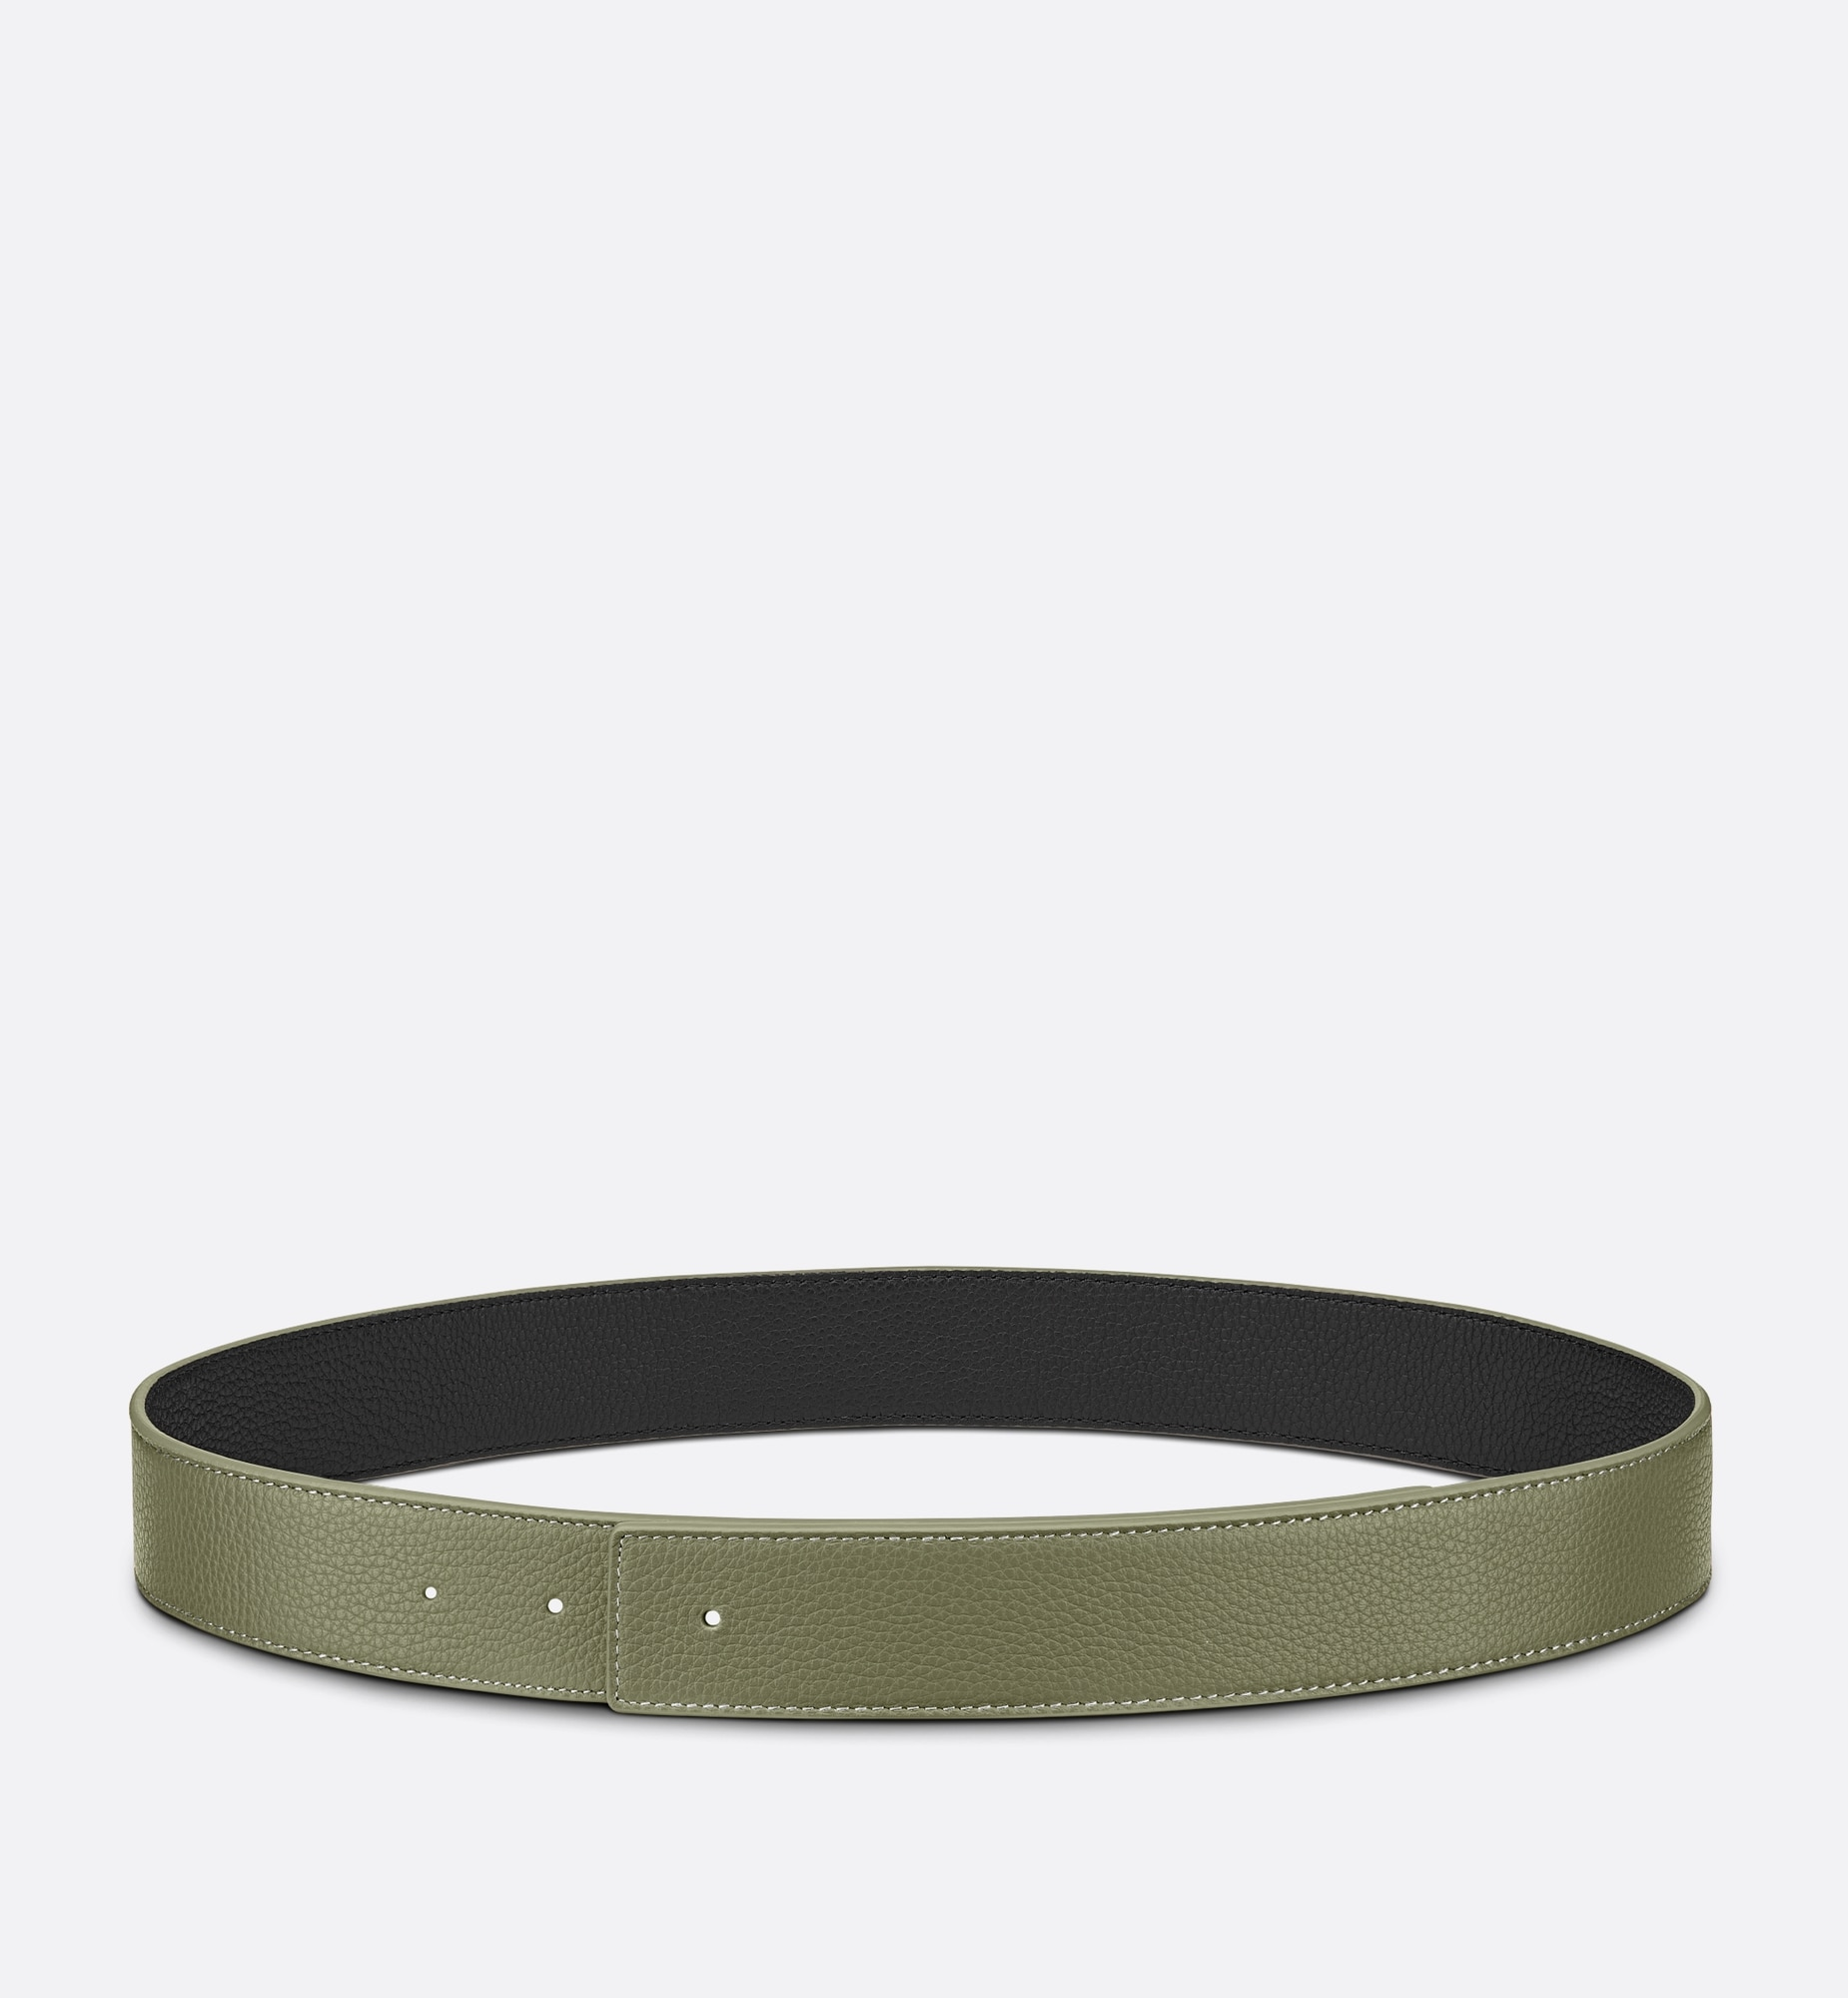 reversible belt strap | Dior Front view